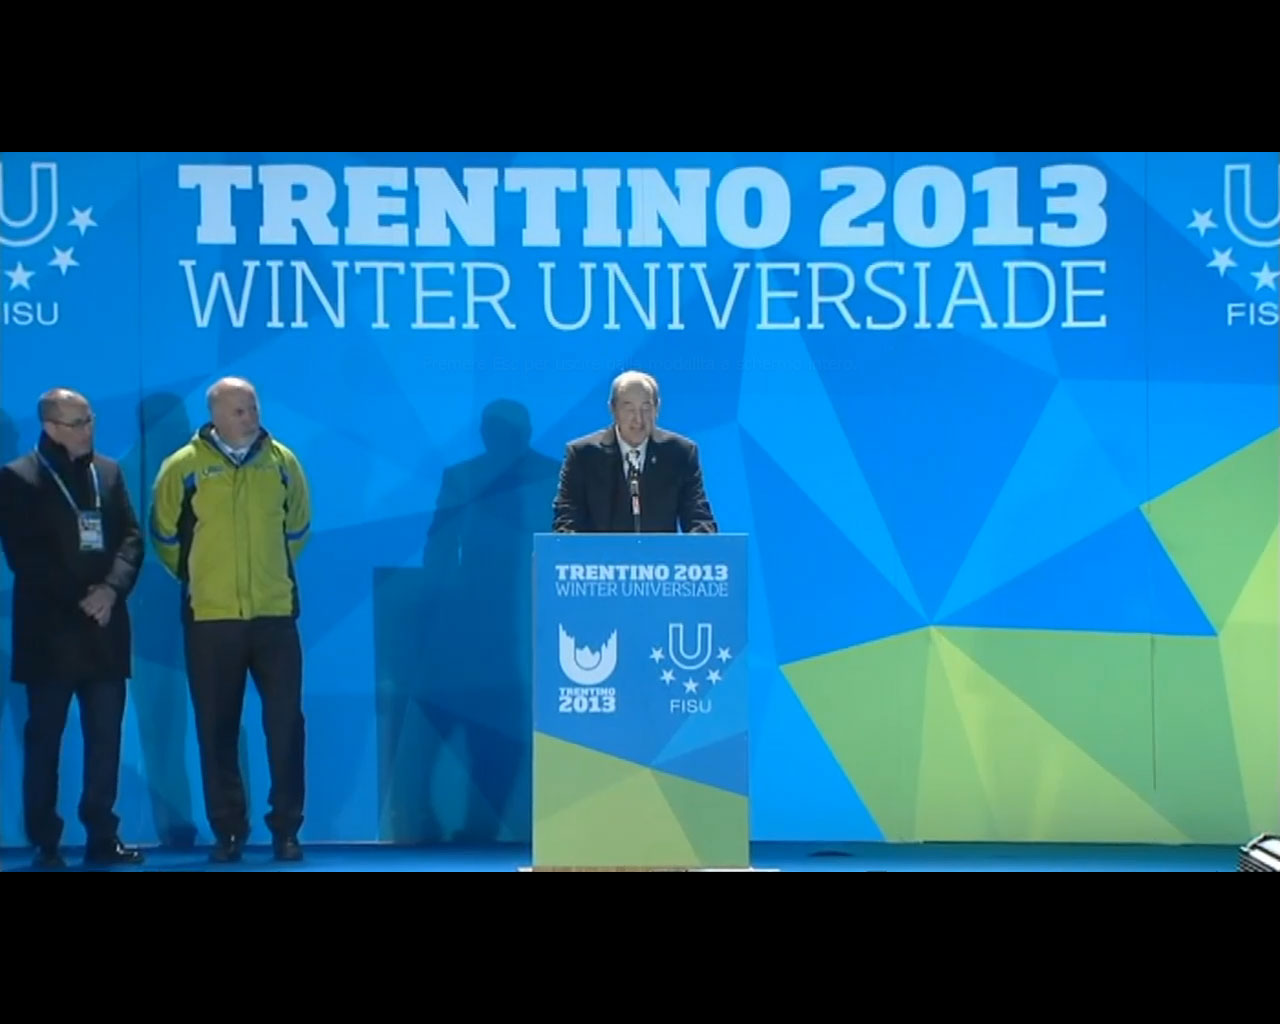 universiade trento video2mp3 - photo#8